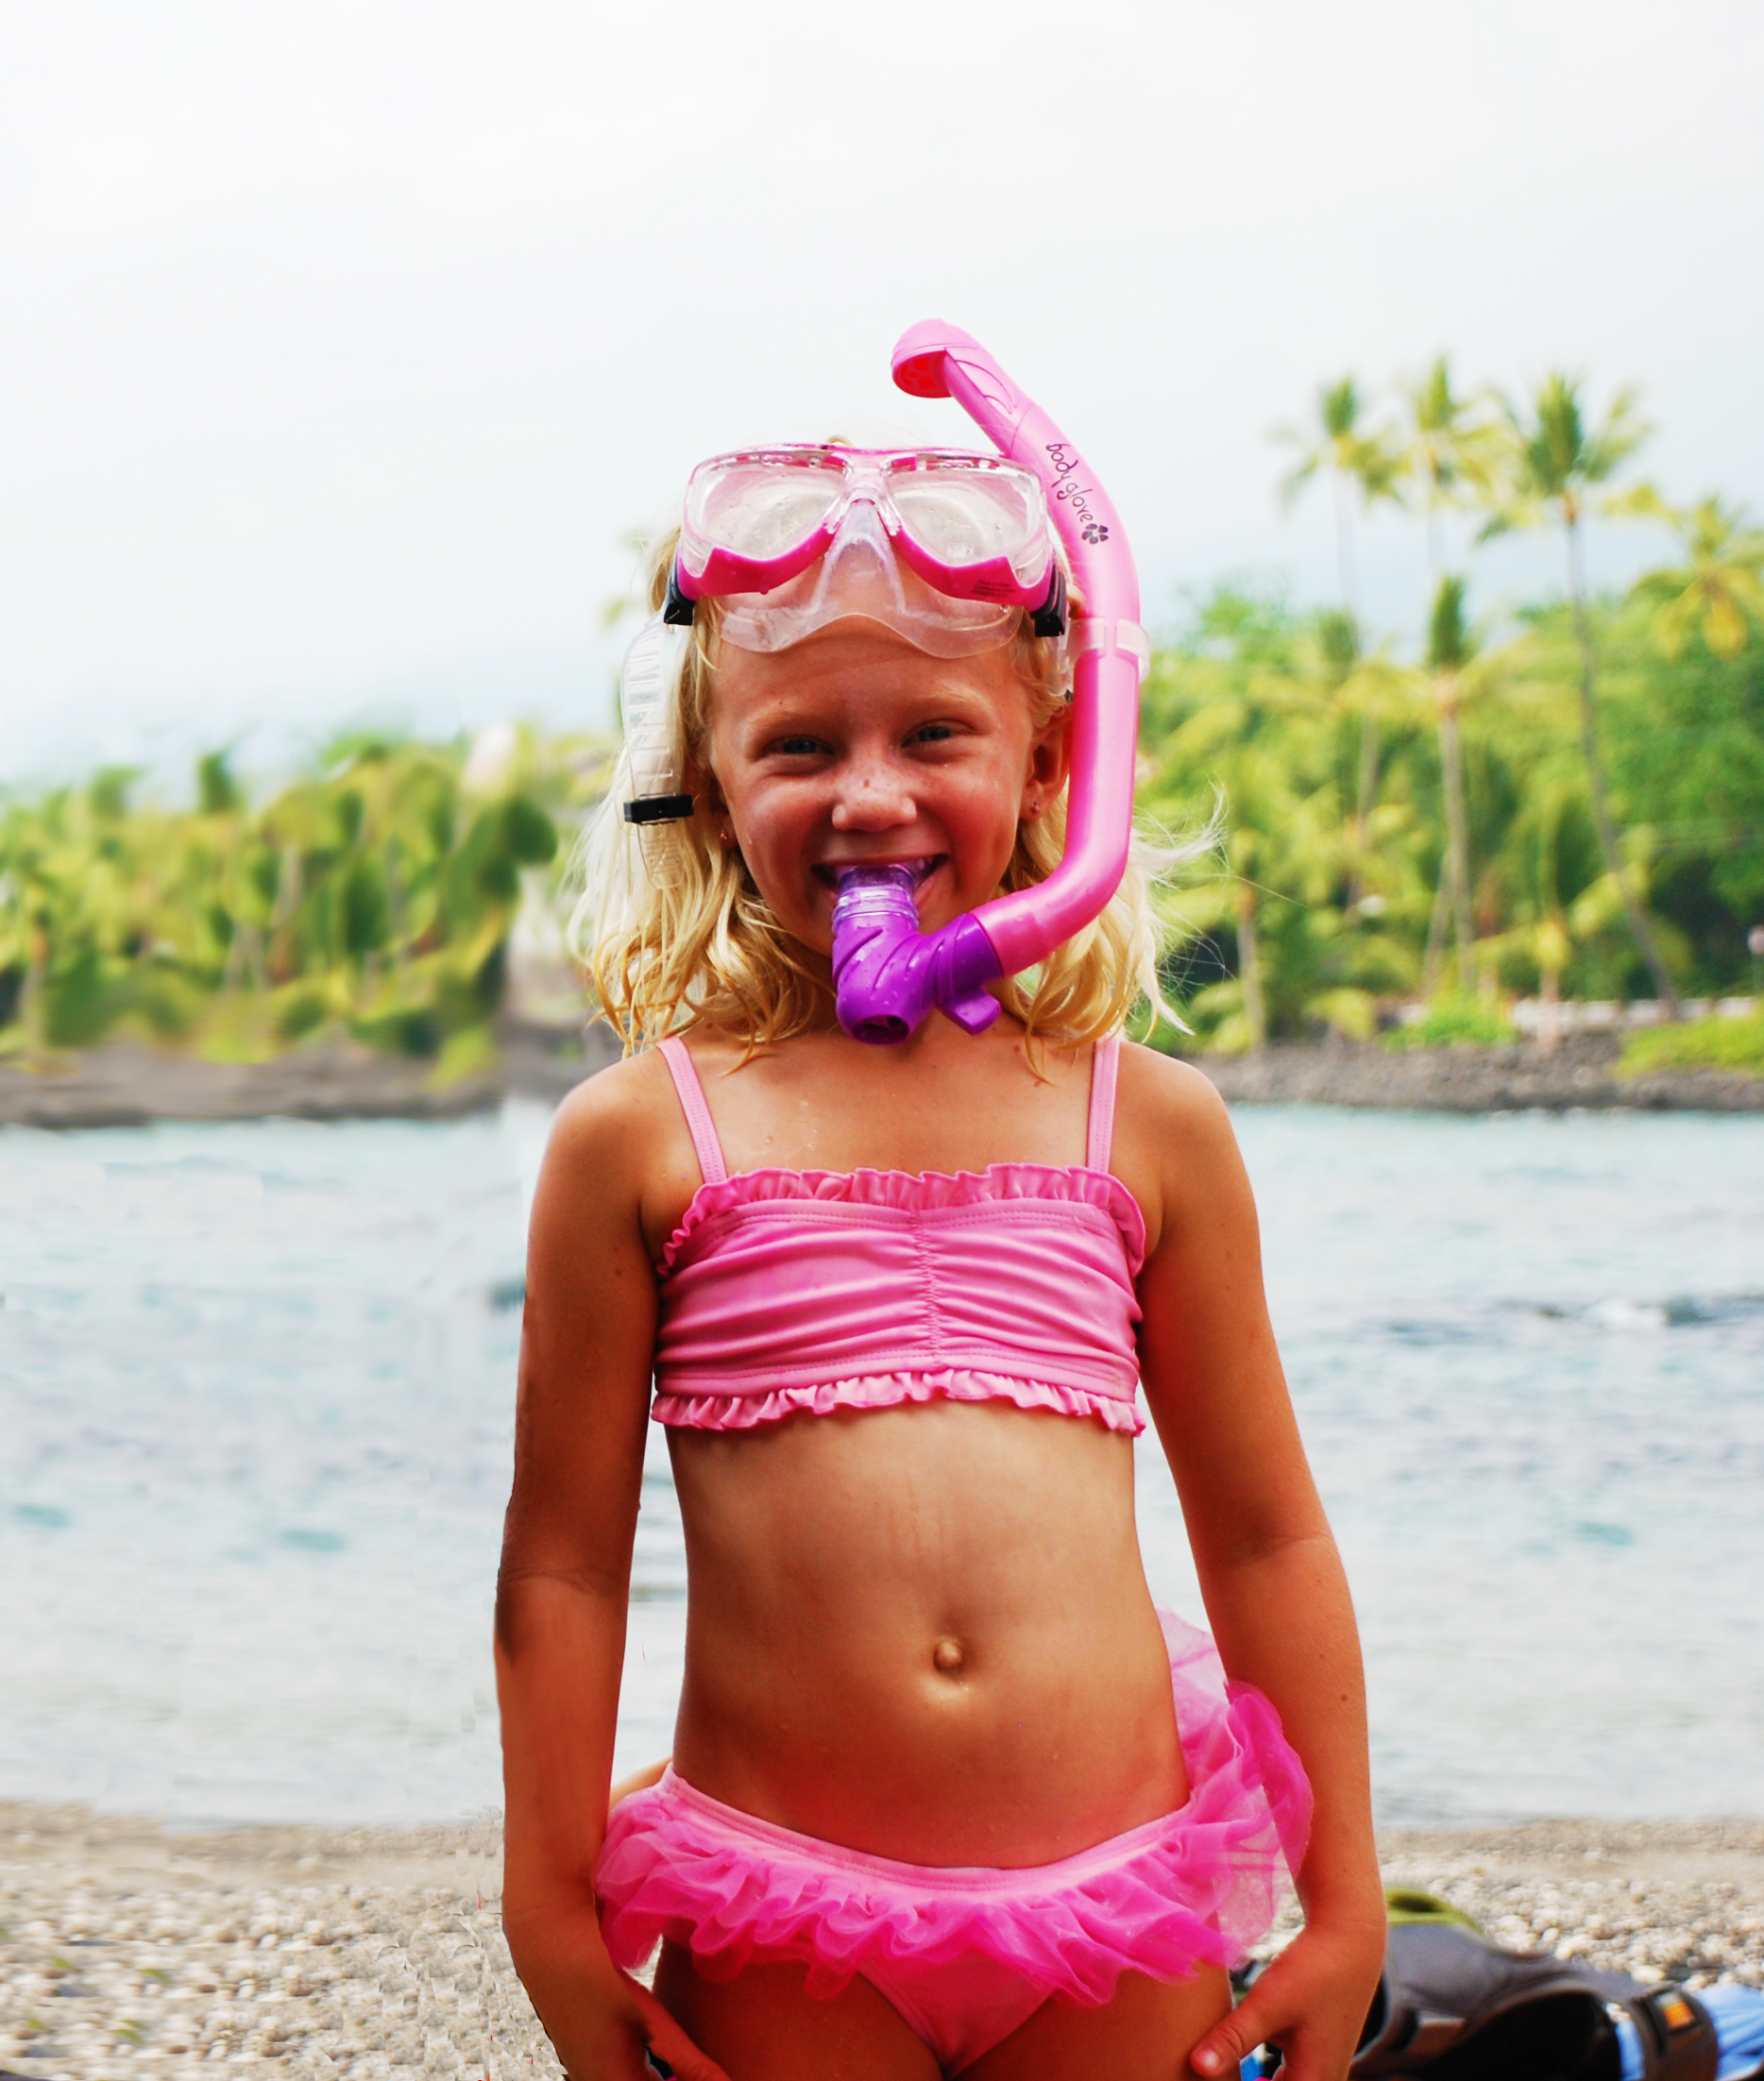 Kona Hawaii Triple Crown Ocean Swim Race Youngest Contestant